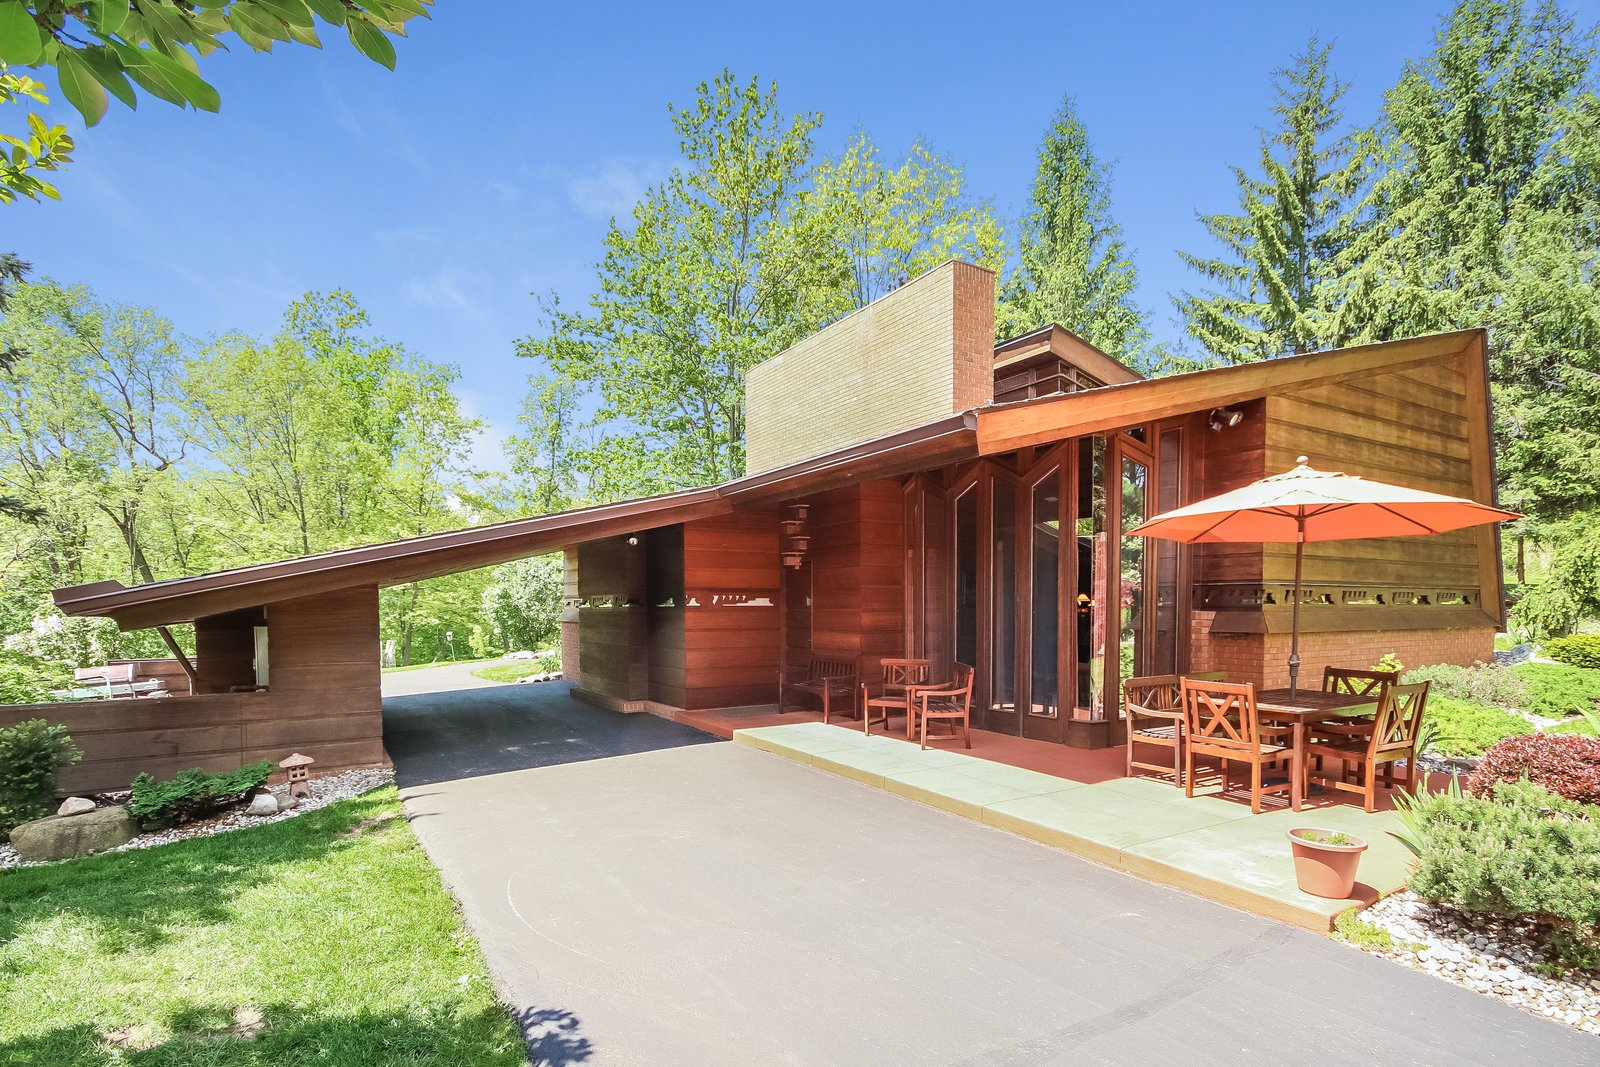 Exterior, Wood Siding Material, and House Building Type  Frank Lloyd Wright's Small Masterpiece: The Haddock House